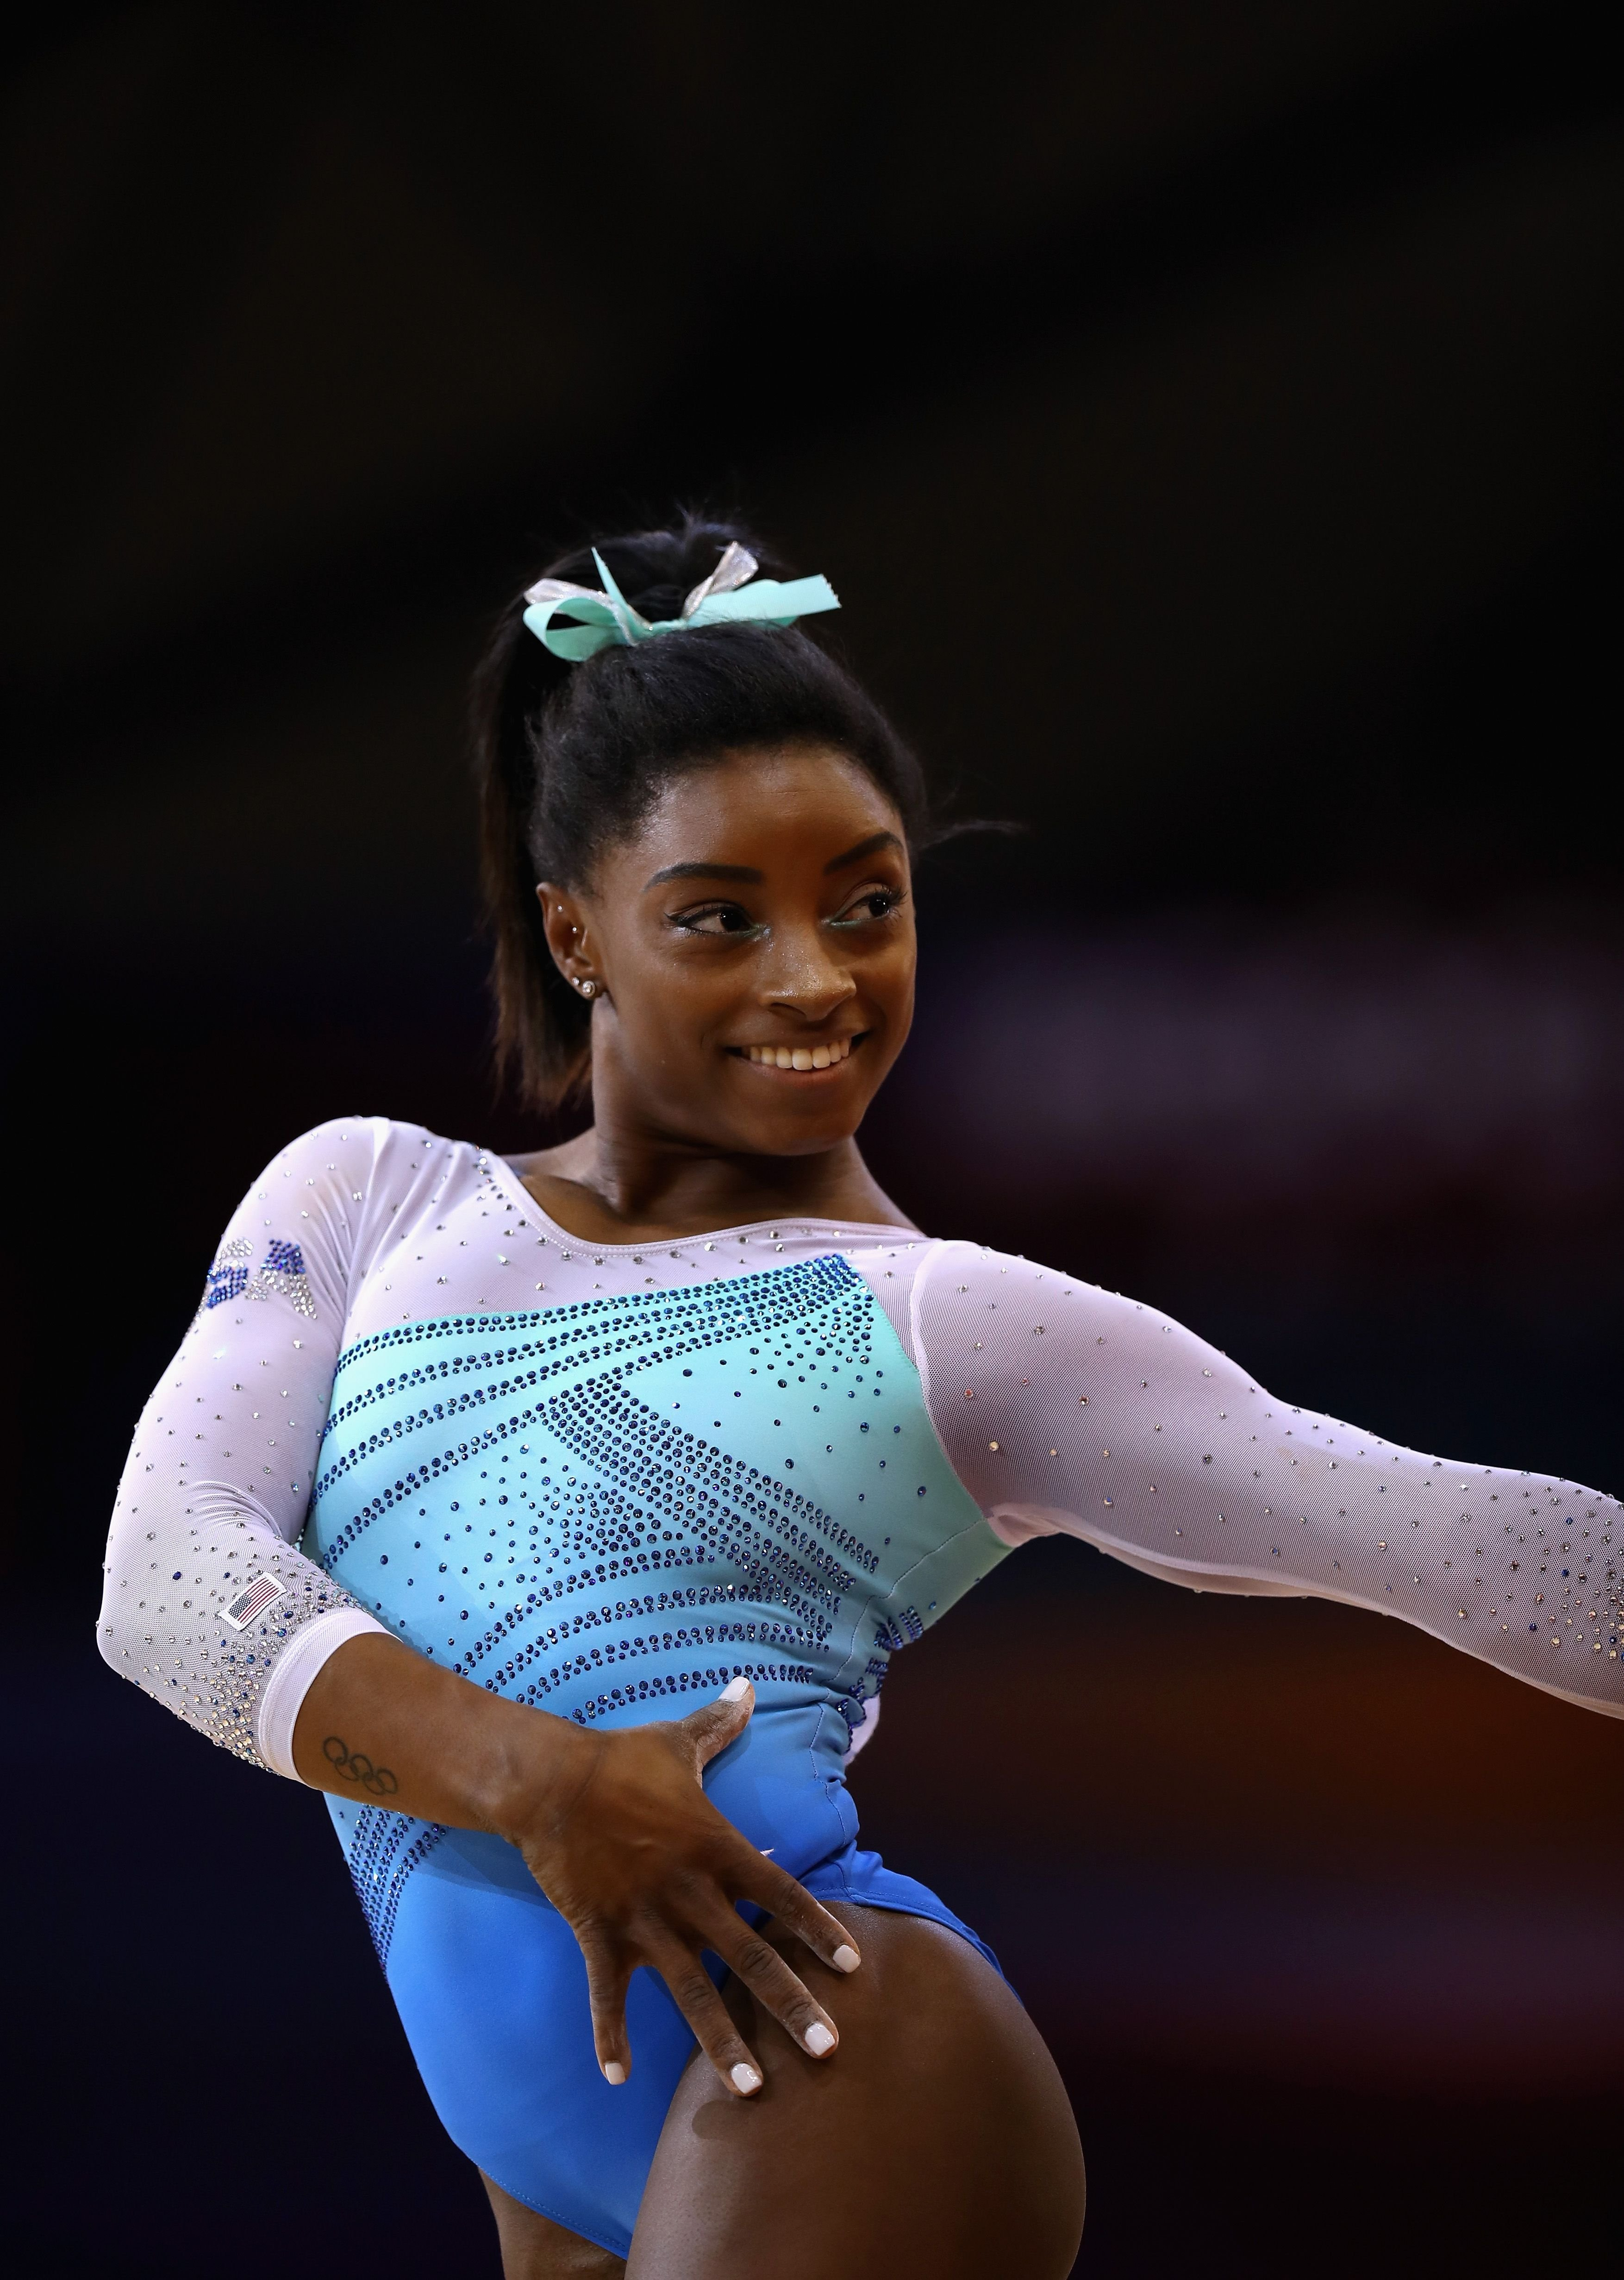 Simone Biles competing in the Women's All-Round Final of the 2018 FIG Artistic Gymnastics Championships on November 1, 2018 in Qatar. | Photo: Getty Images